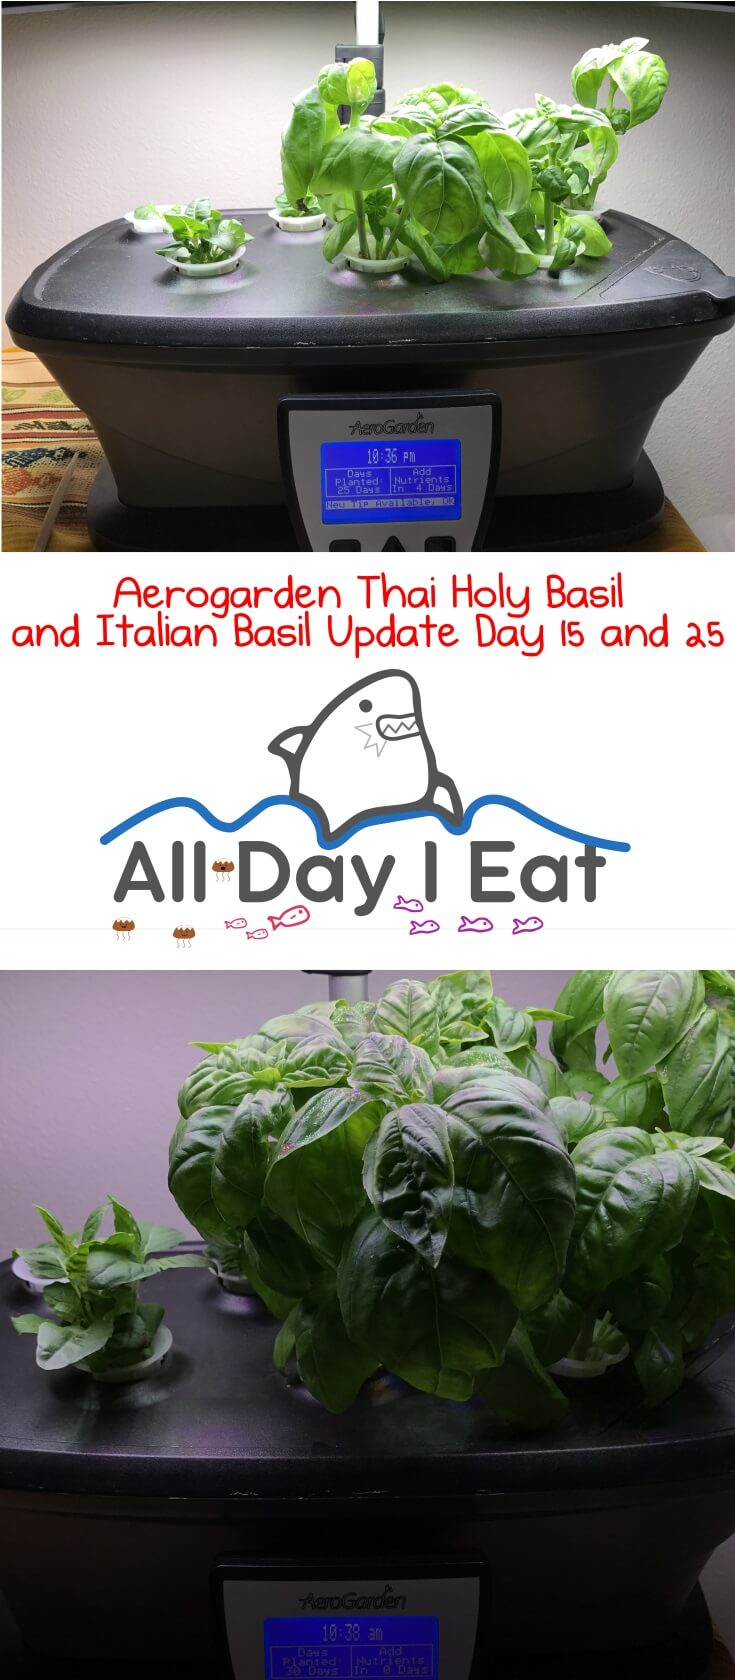 Aerogarden Thai Holy Basil and Italian Basil Update Day 15 and 25. Growing your own herbs indoors, hydroponically, and organically couldn't be any easier! | www.alldayieat.com